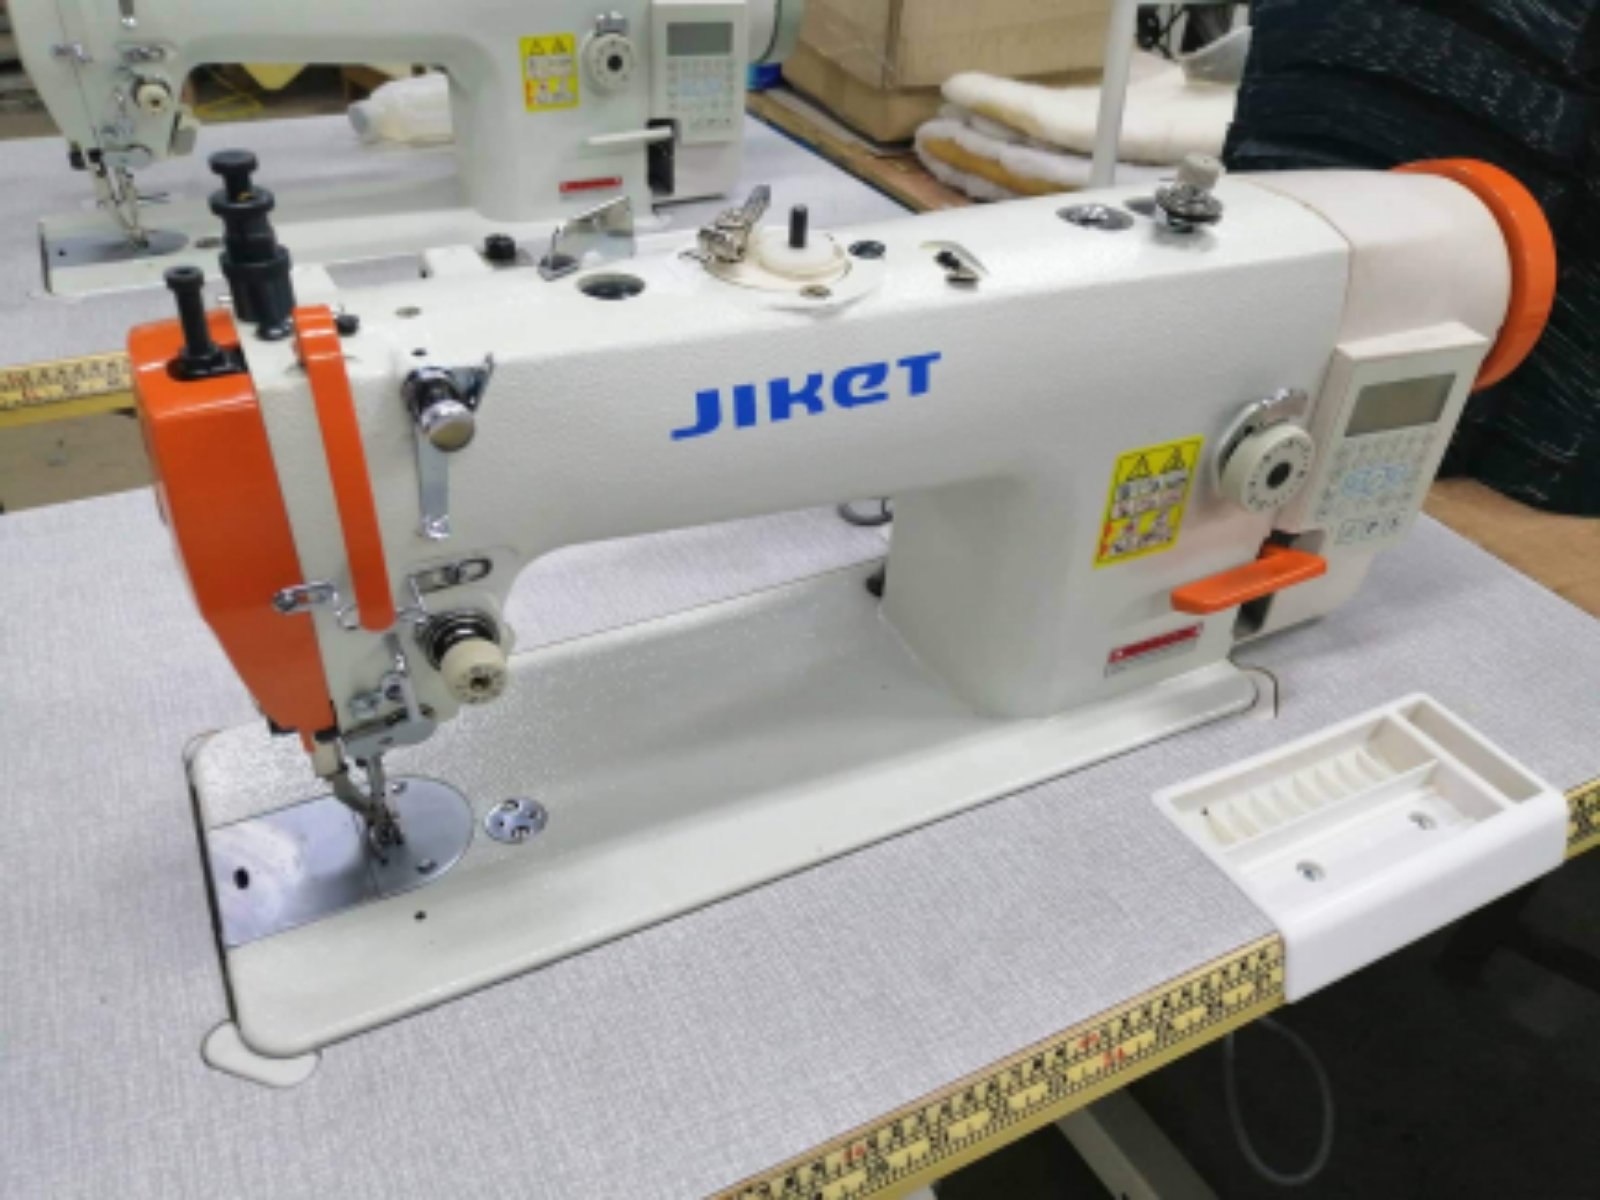 New Jiket Sewing Machine